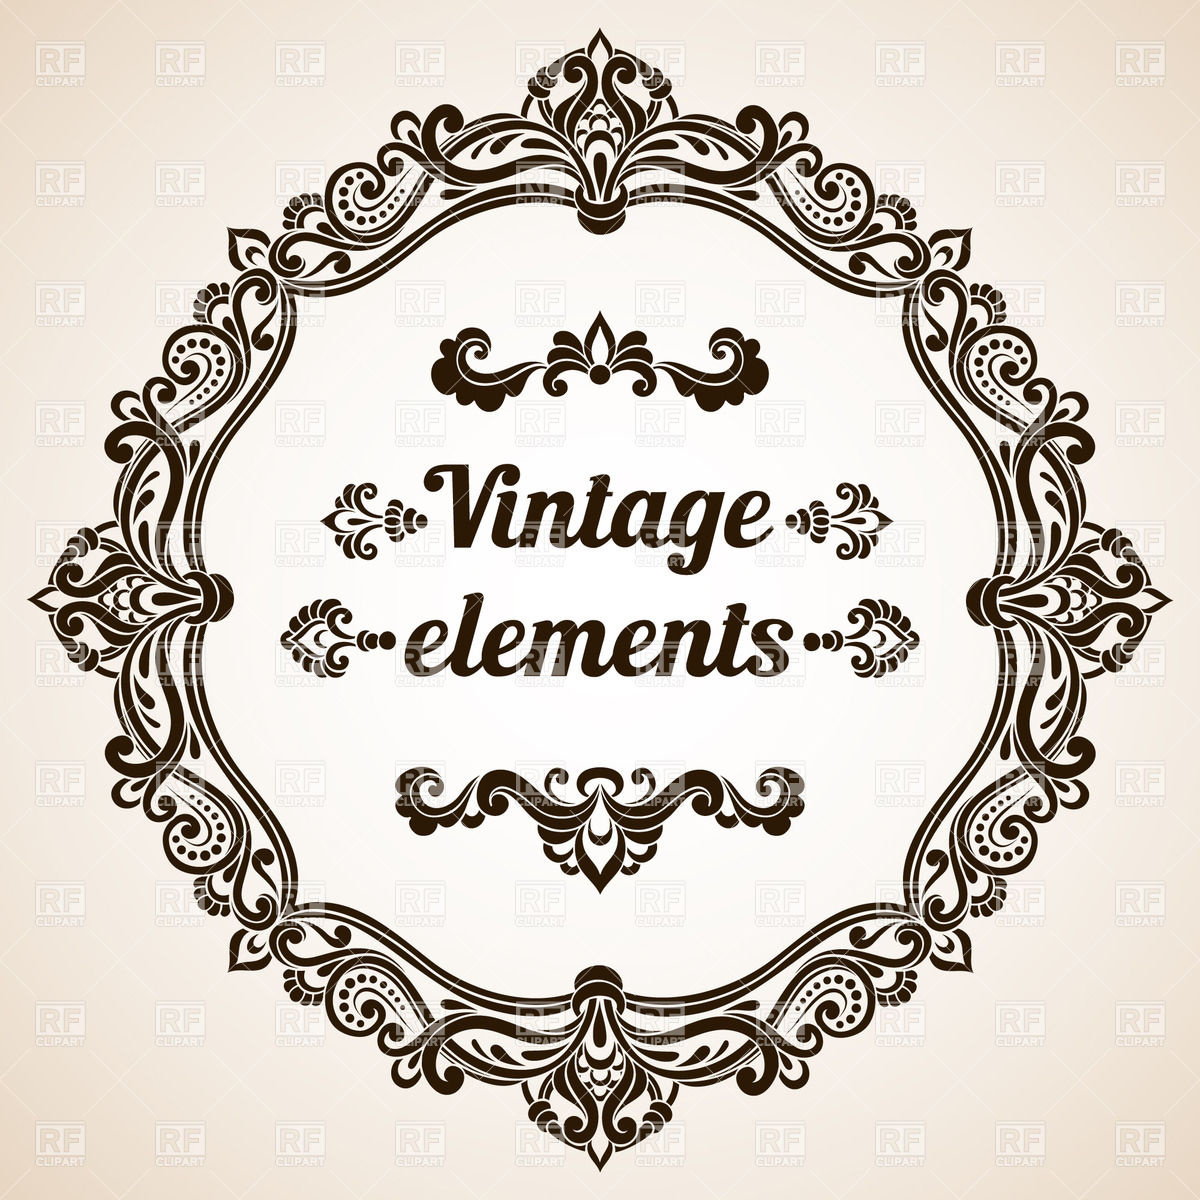 1200x1200 Round Vintage Frame With Ornate Border Vector Image Vector